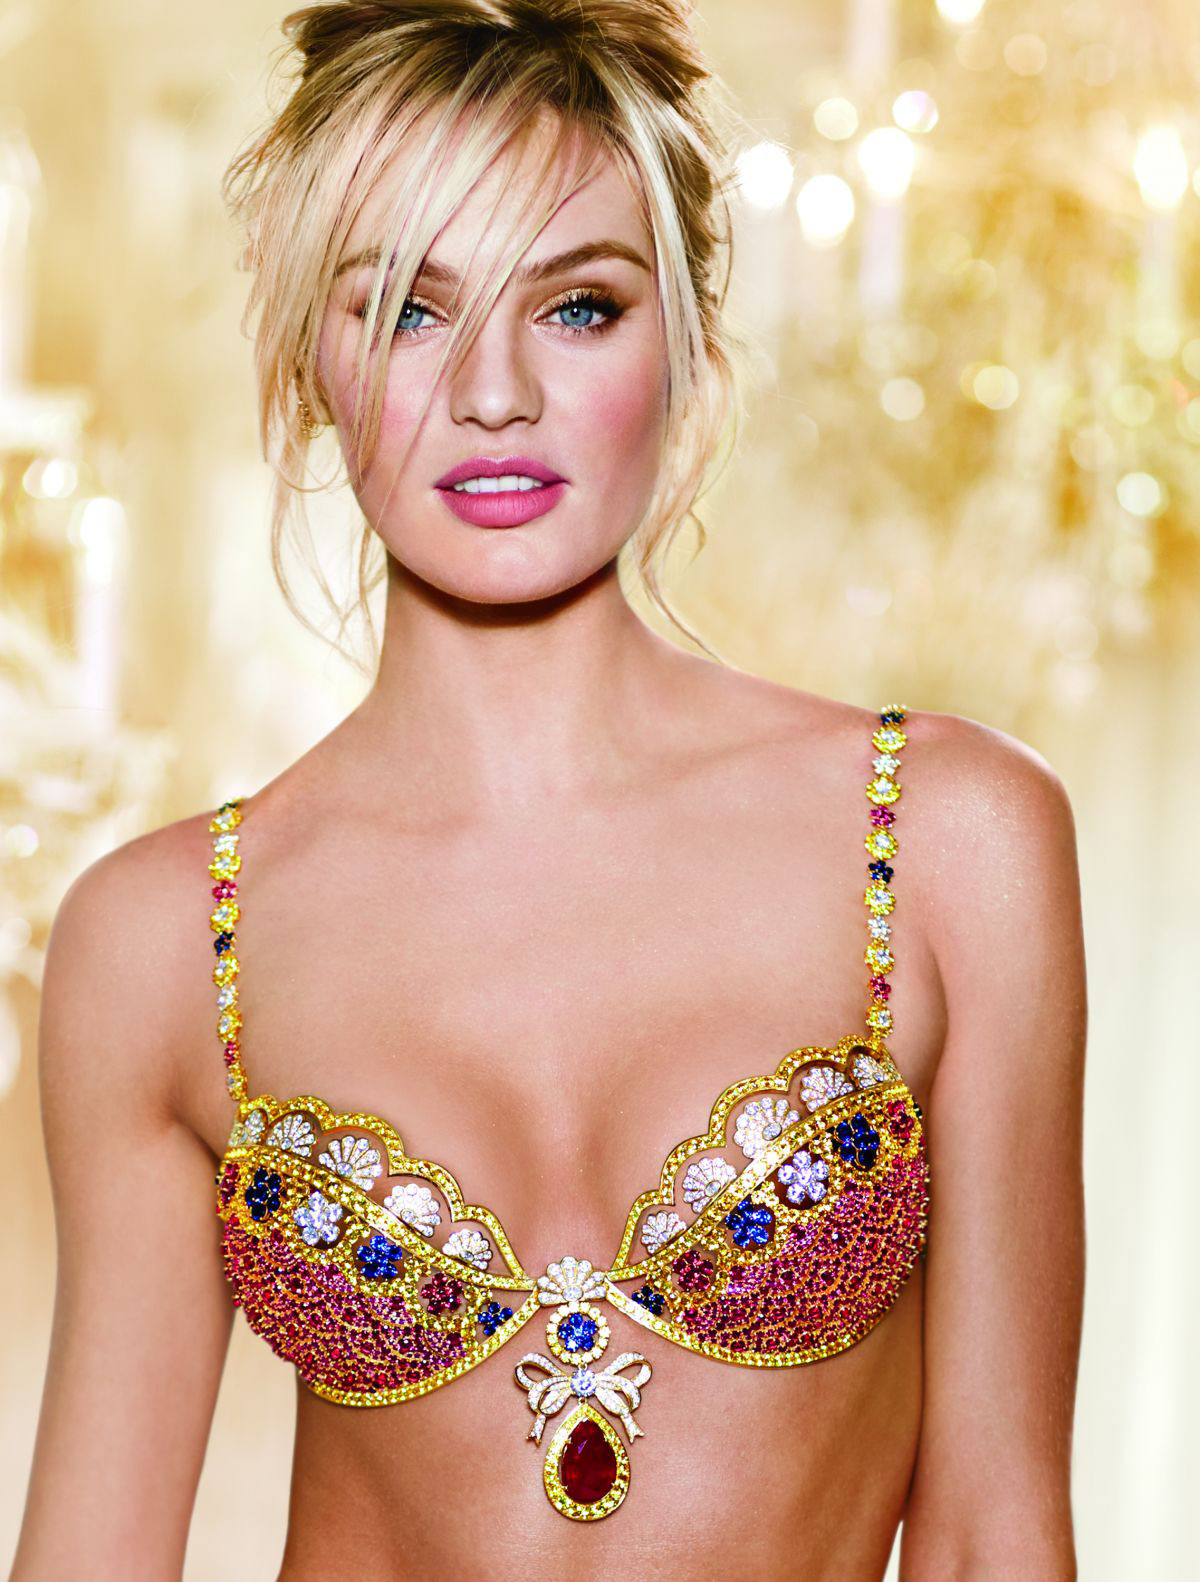 Candice Swanepoel to Parade in $10 million Fantasy Bra At ...